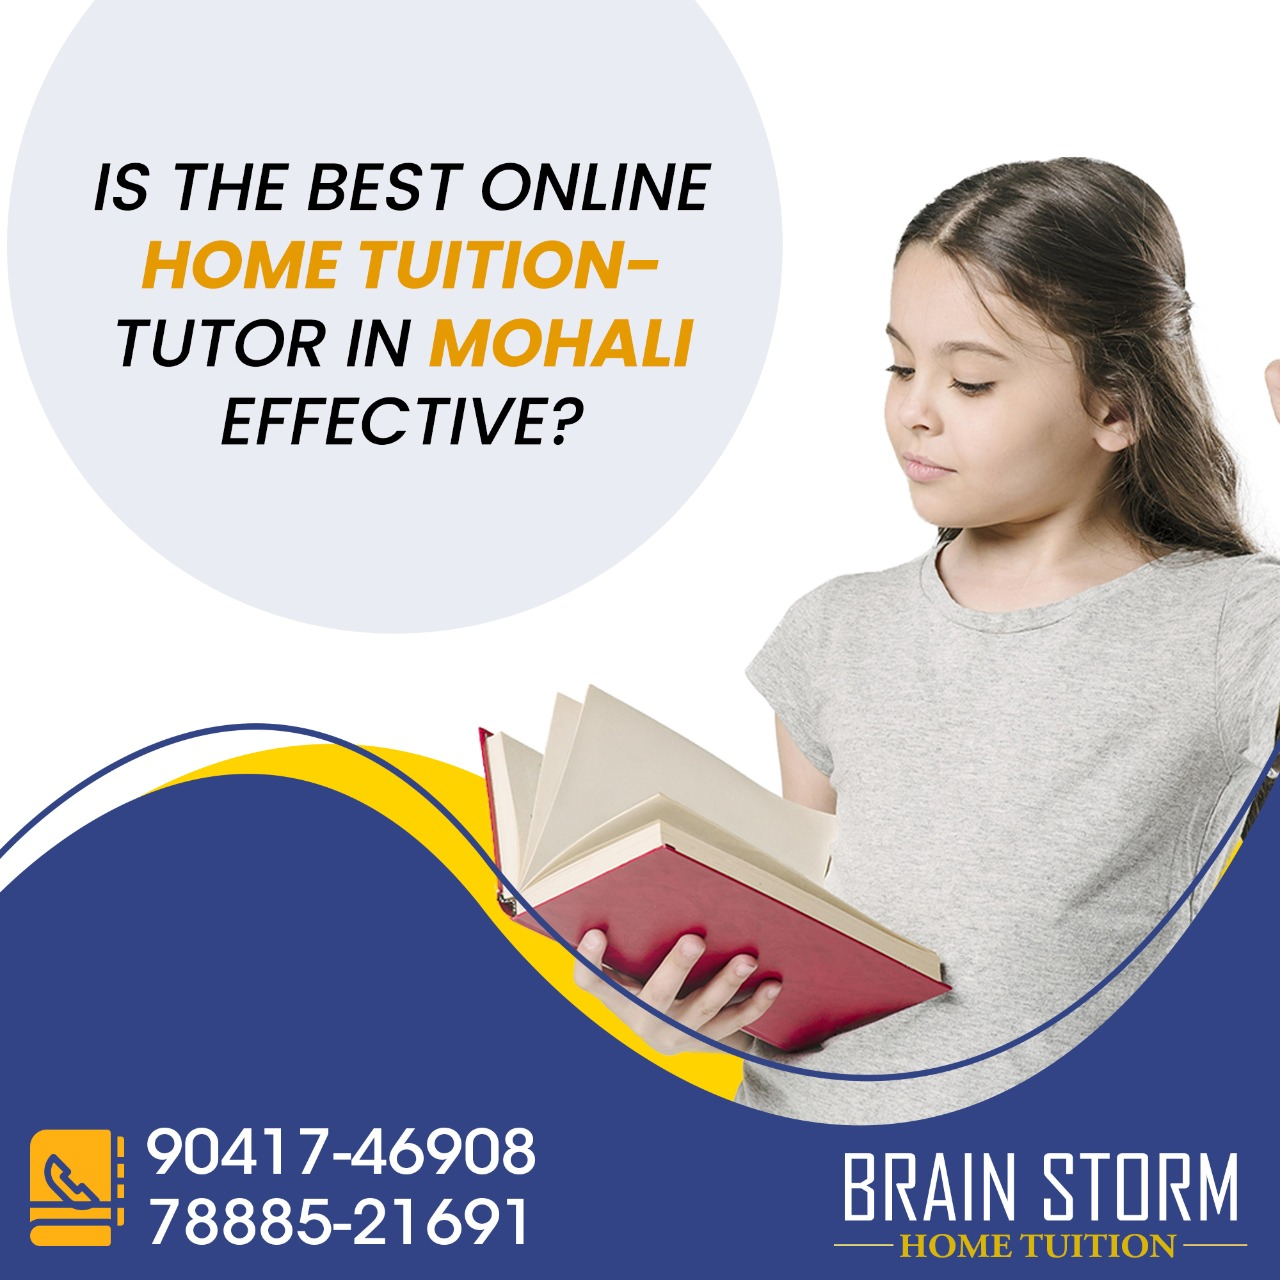 Is The Best Online Home Tuition- Tutor In Mohali Effective?